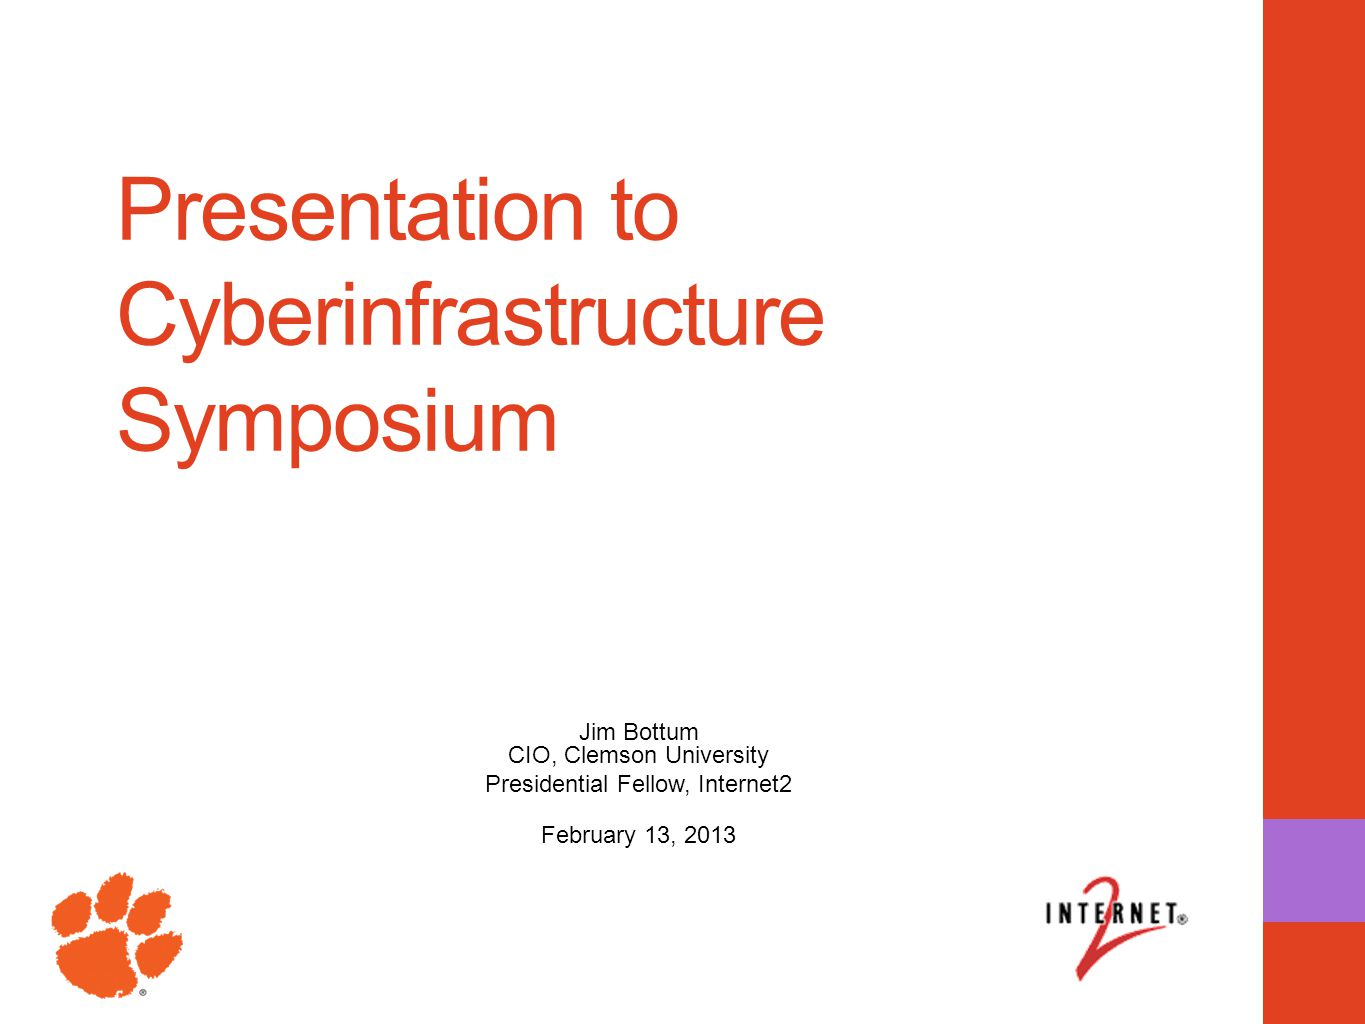 Presentation to Cyberinfrastructure Symposium Jim Bottum CIO, Clemson University Presidential Fellow, Internet2 February 13, 2013